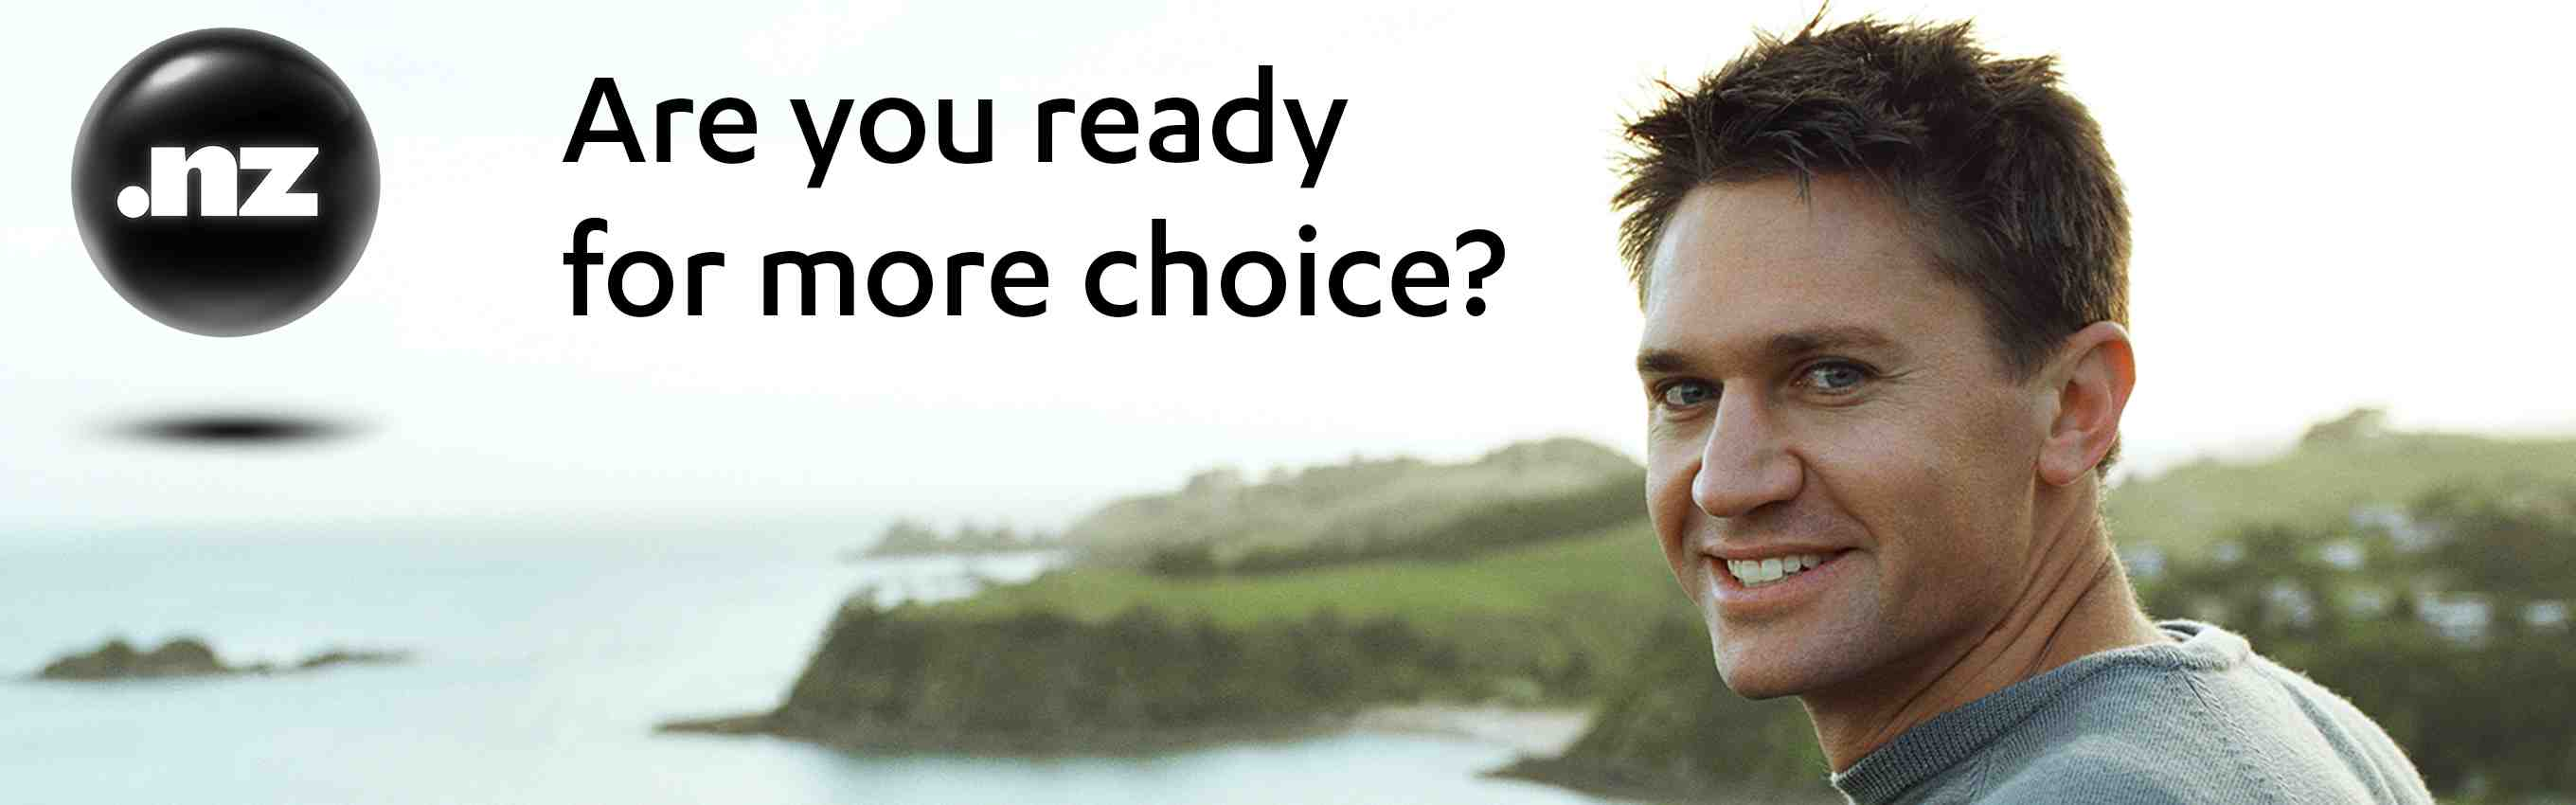 dotnz launch | there is a new choice coming soon